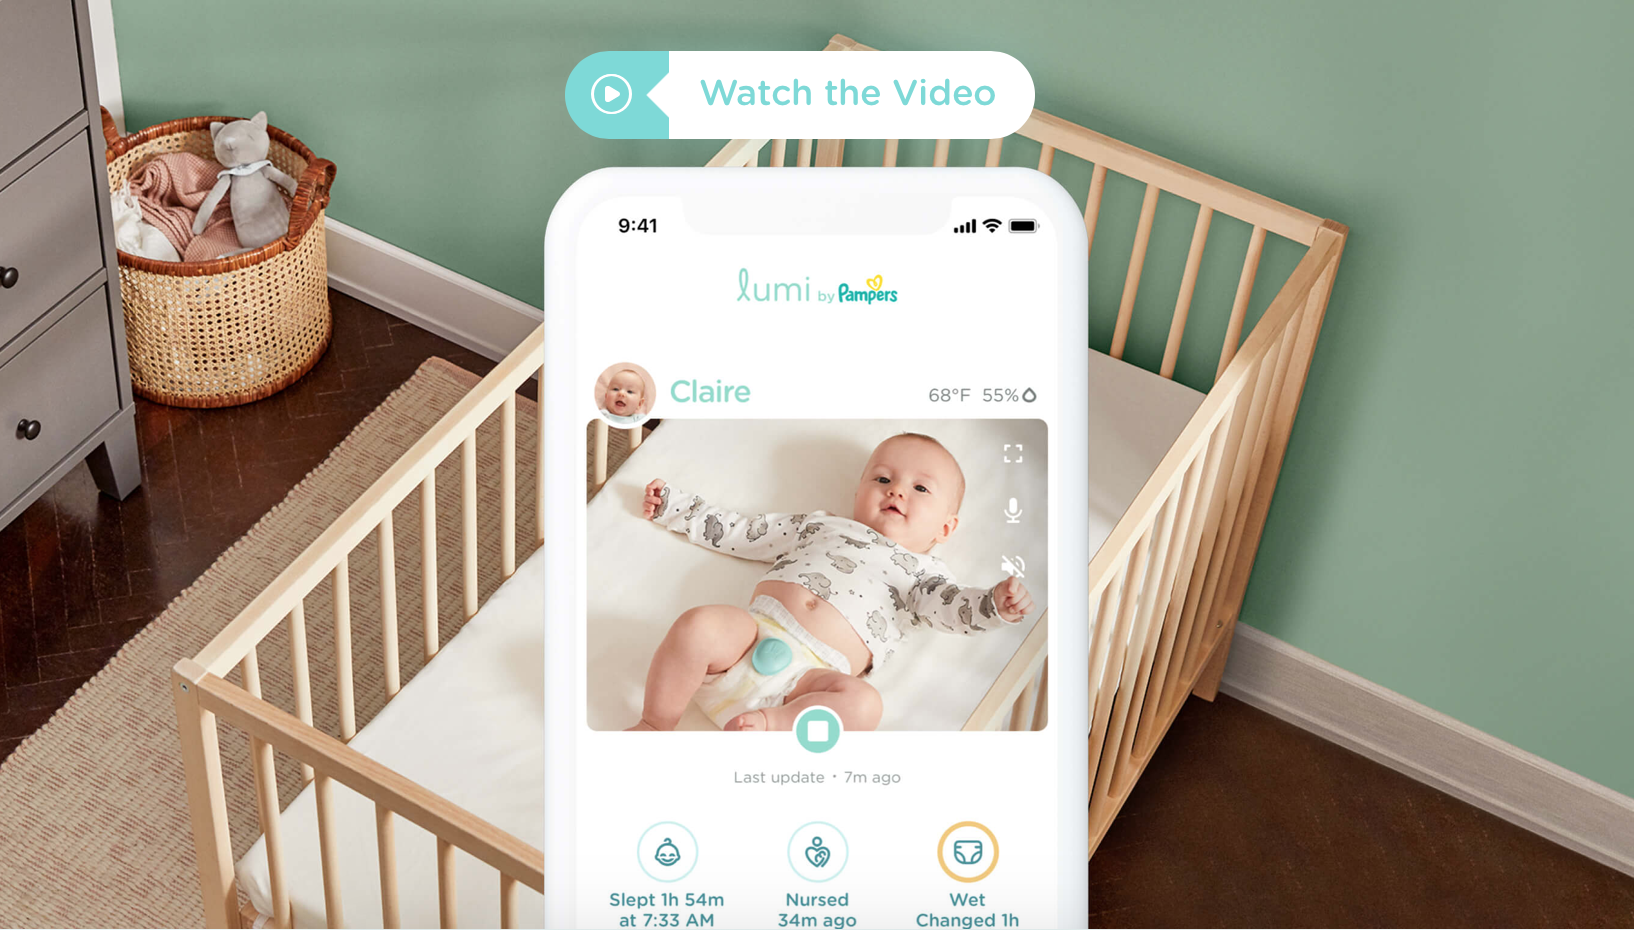 Lumi app for diapers shown on the phone over a crib in a home